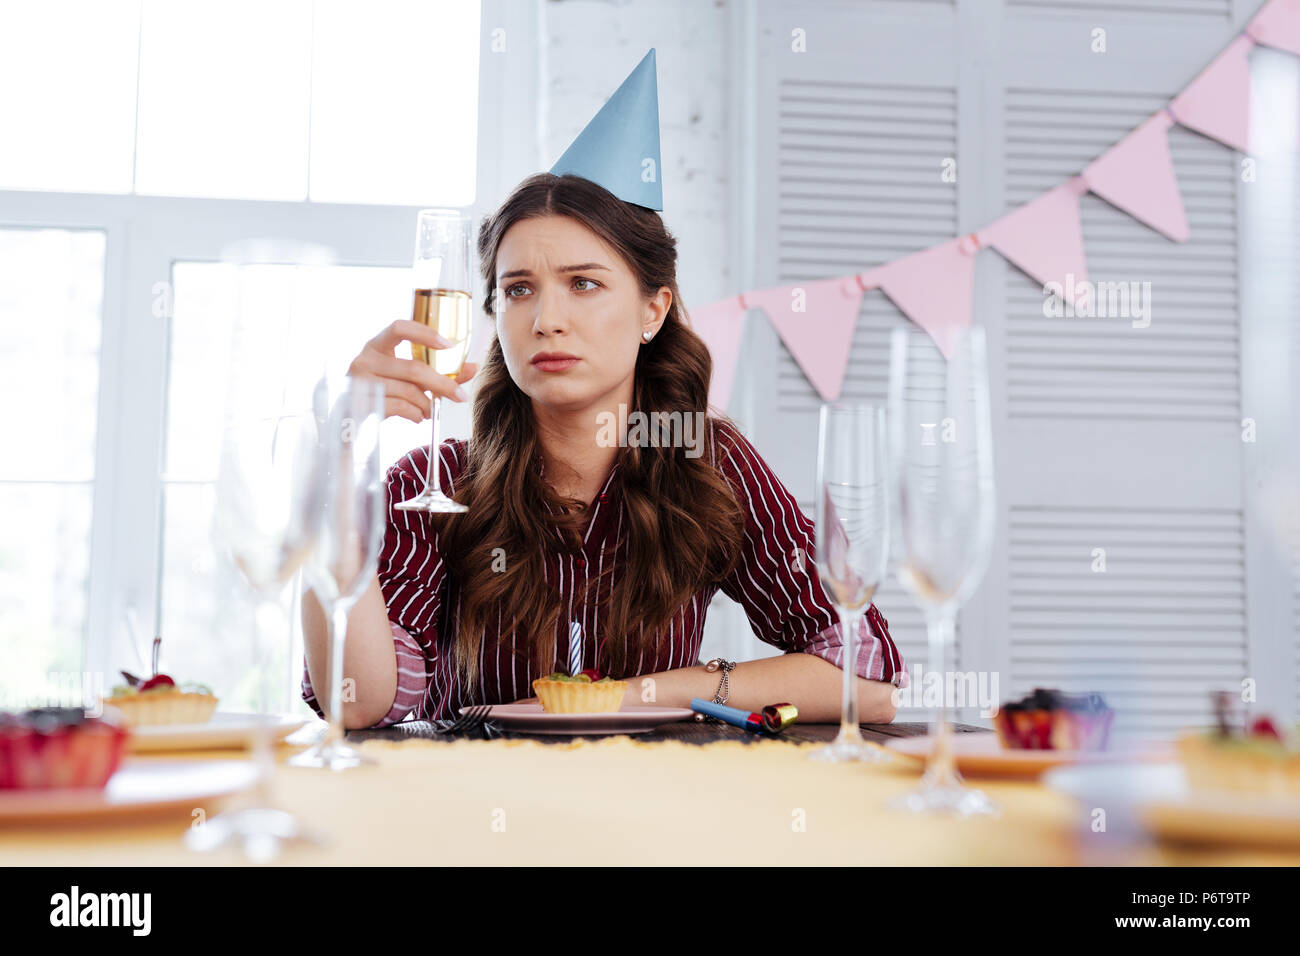 Woman feeling pessimistic at birthday party - Stock Image